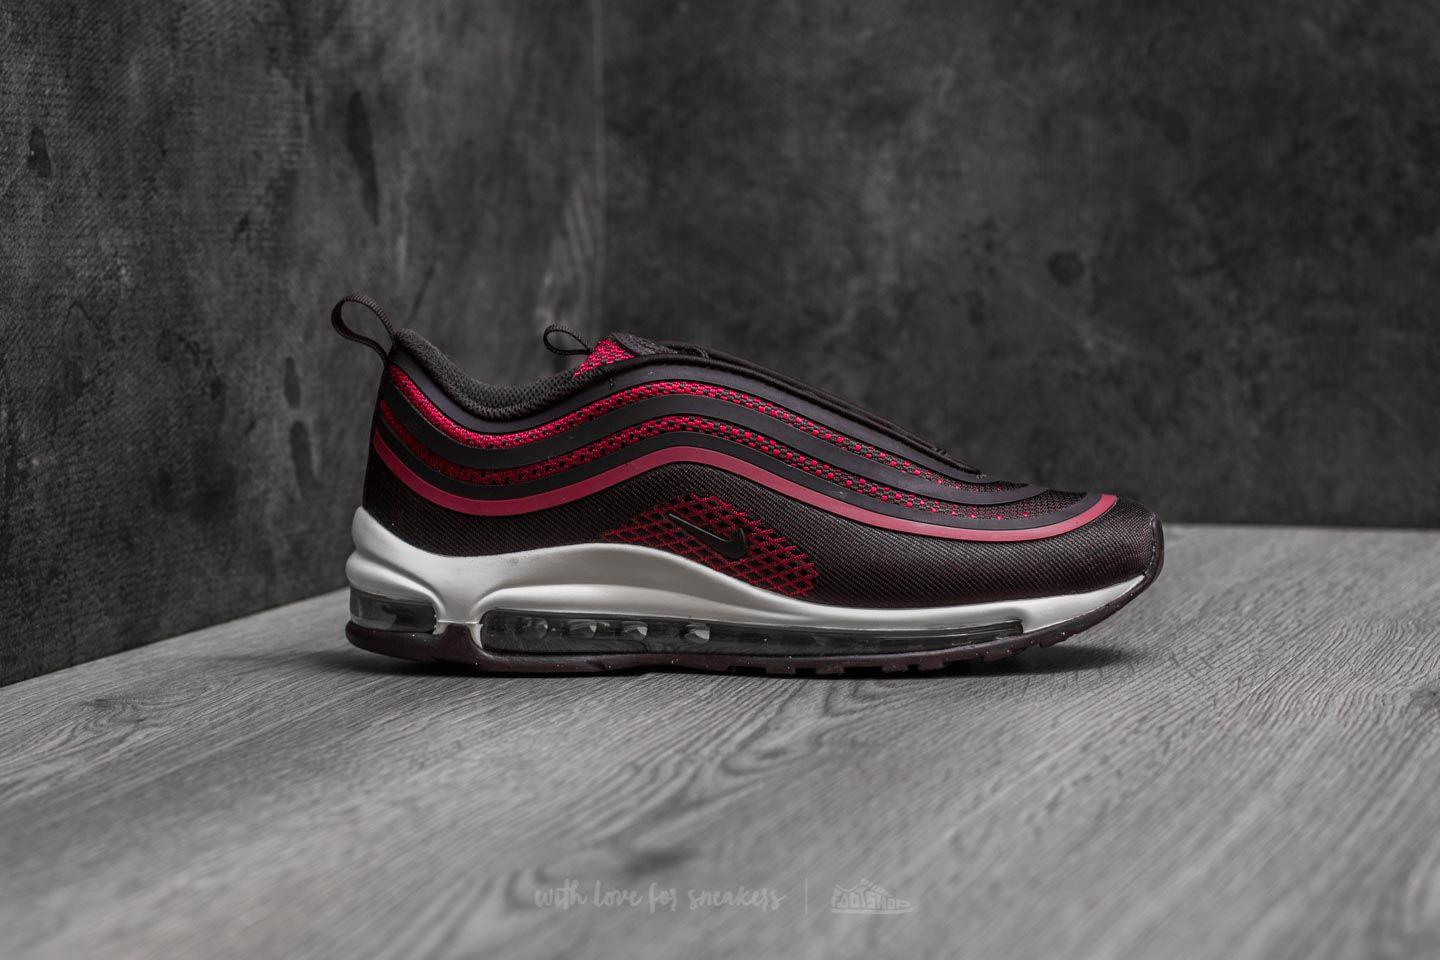 Lyst - Nike Air Max 97 Ultra 17 (gs) Noble Red  Port Wine for Men 7cda53b70e4